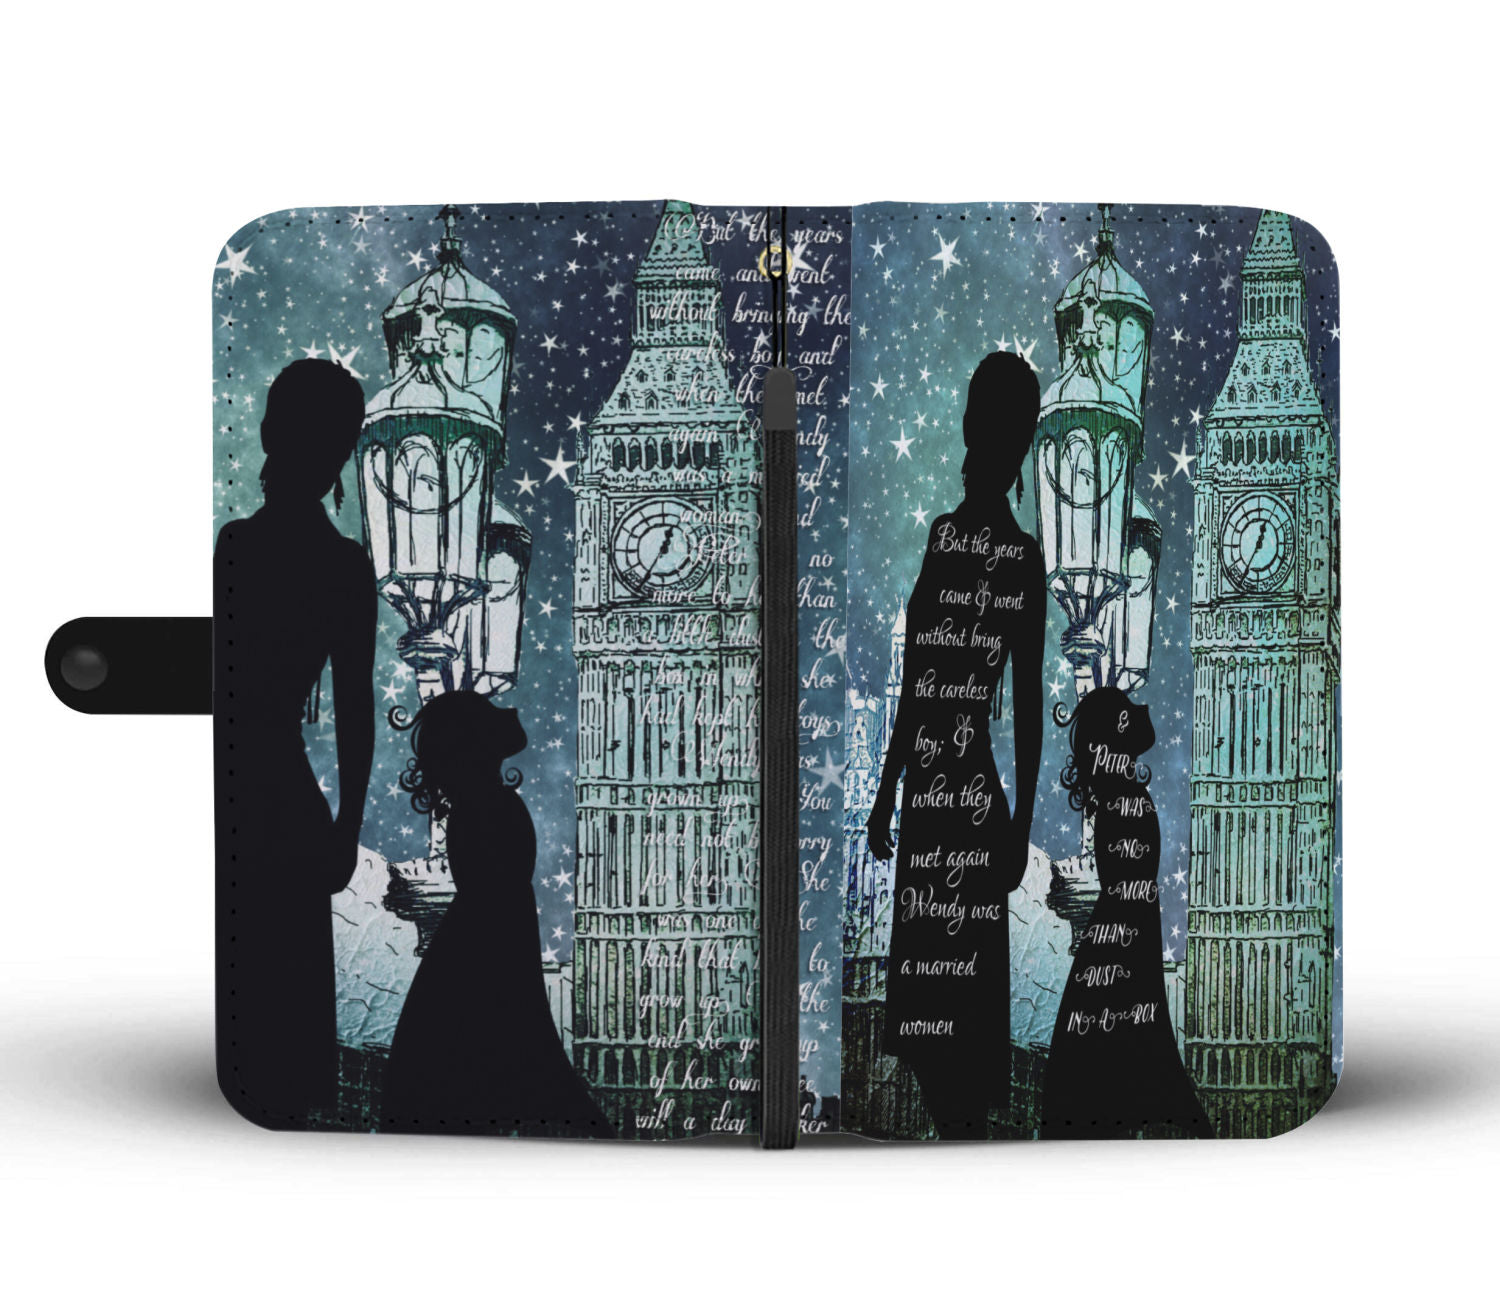 Peter Pan Wendy Grew Up Phone Wallet-Starry Meadows